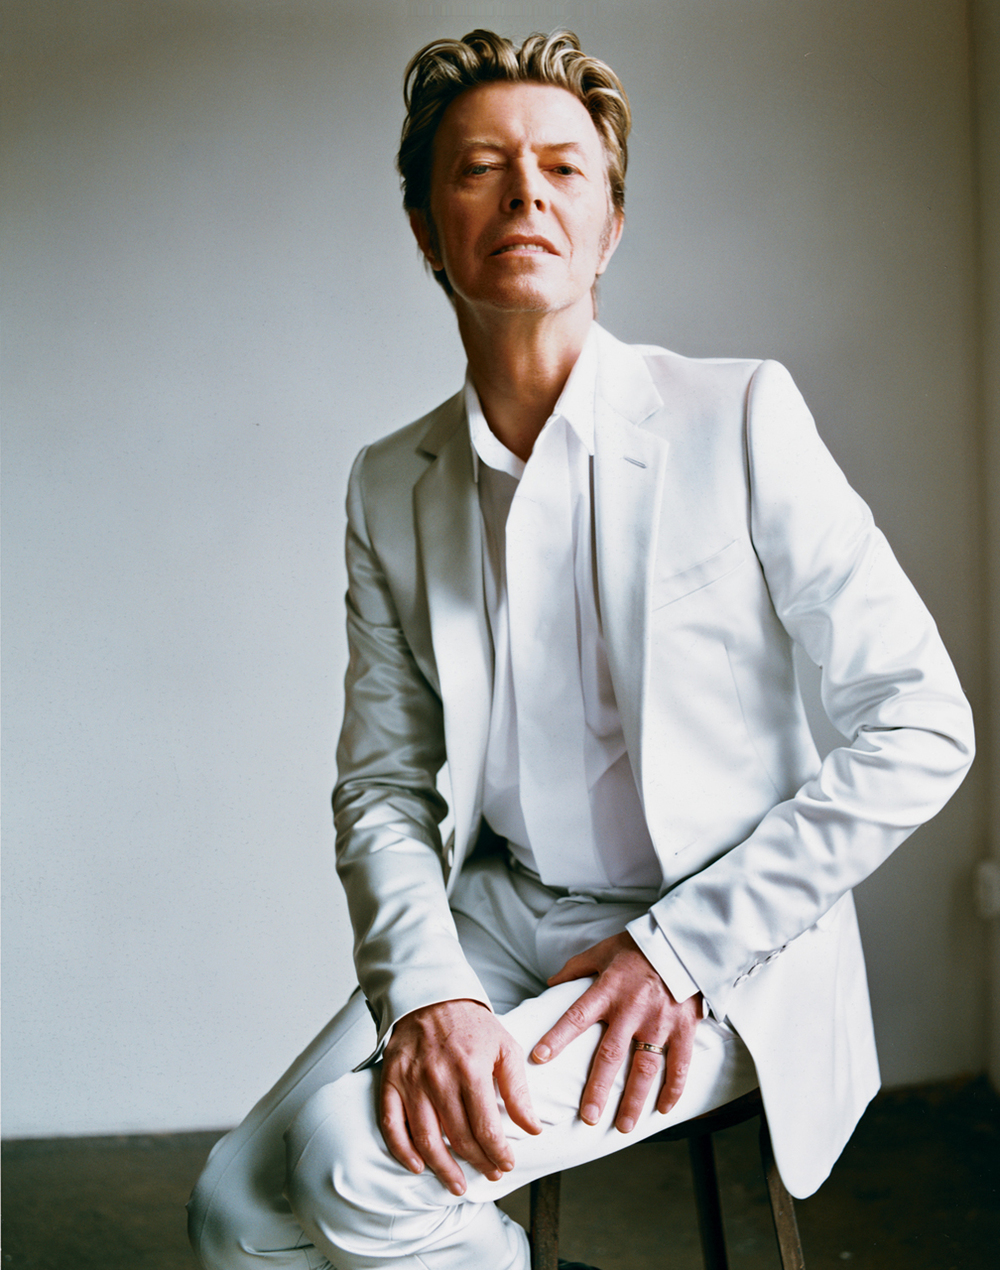 David_Bowie_-_V_18_Summer_2002_281329.jpg